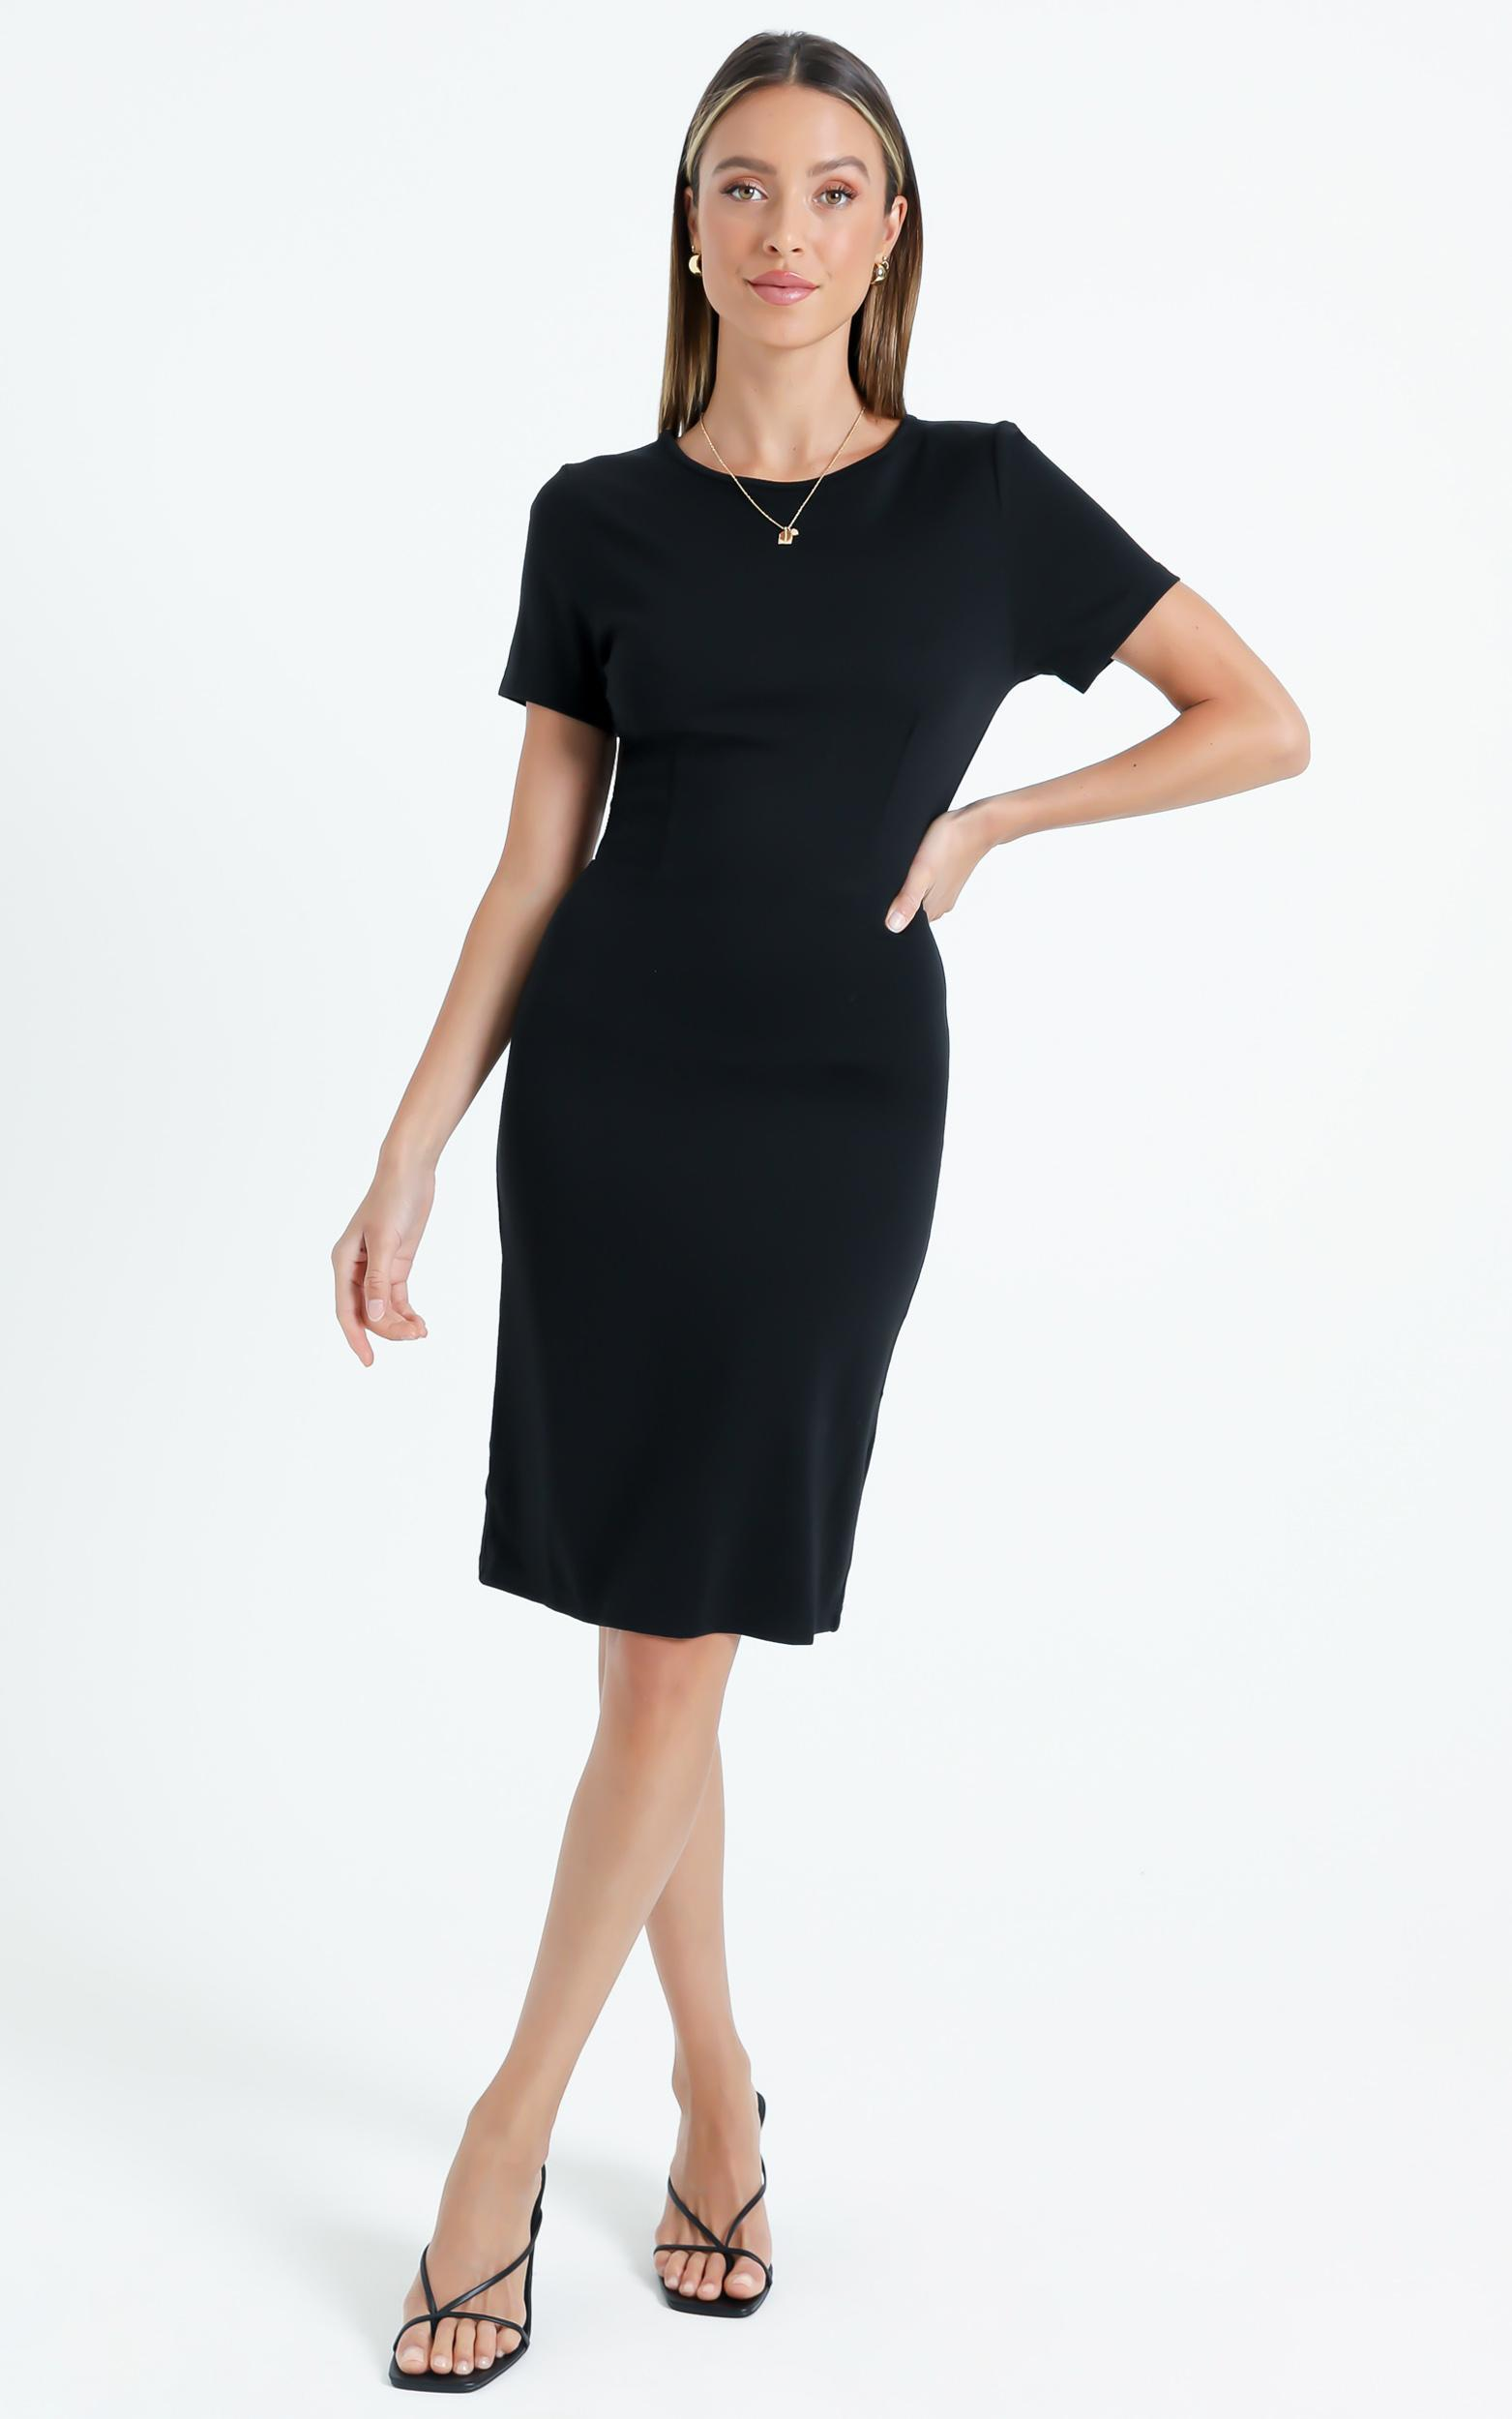 Marlie Dress in Black - 6 (XS), Black, hi-res image number null